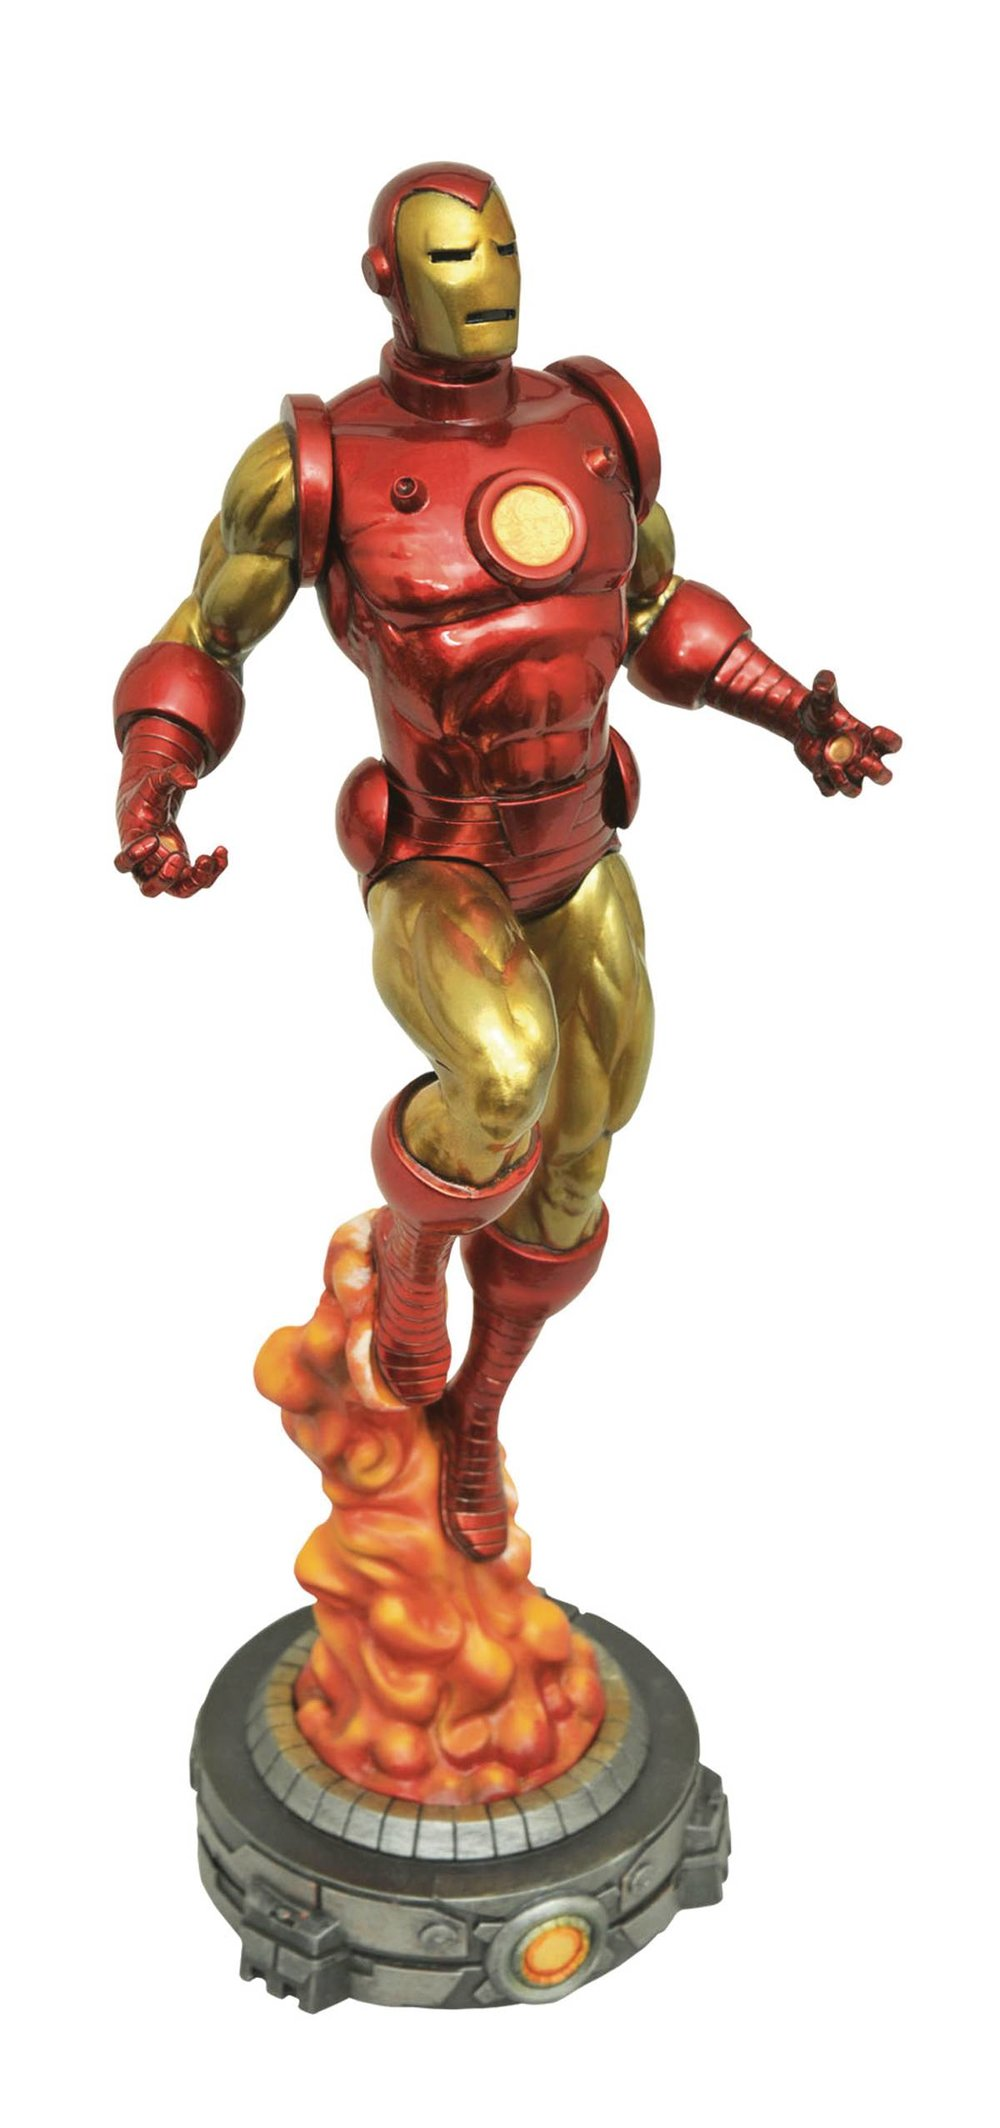 MARVEL GALLERY BOB LAYTON IRON MAN PVC FIG.jpg